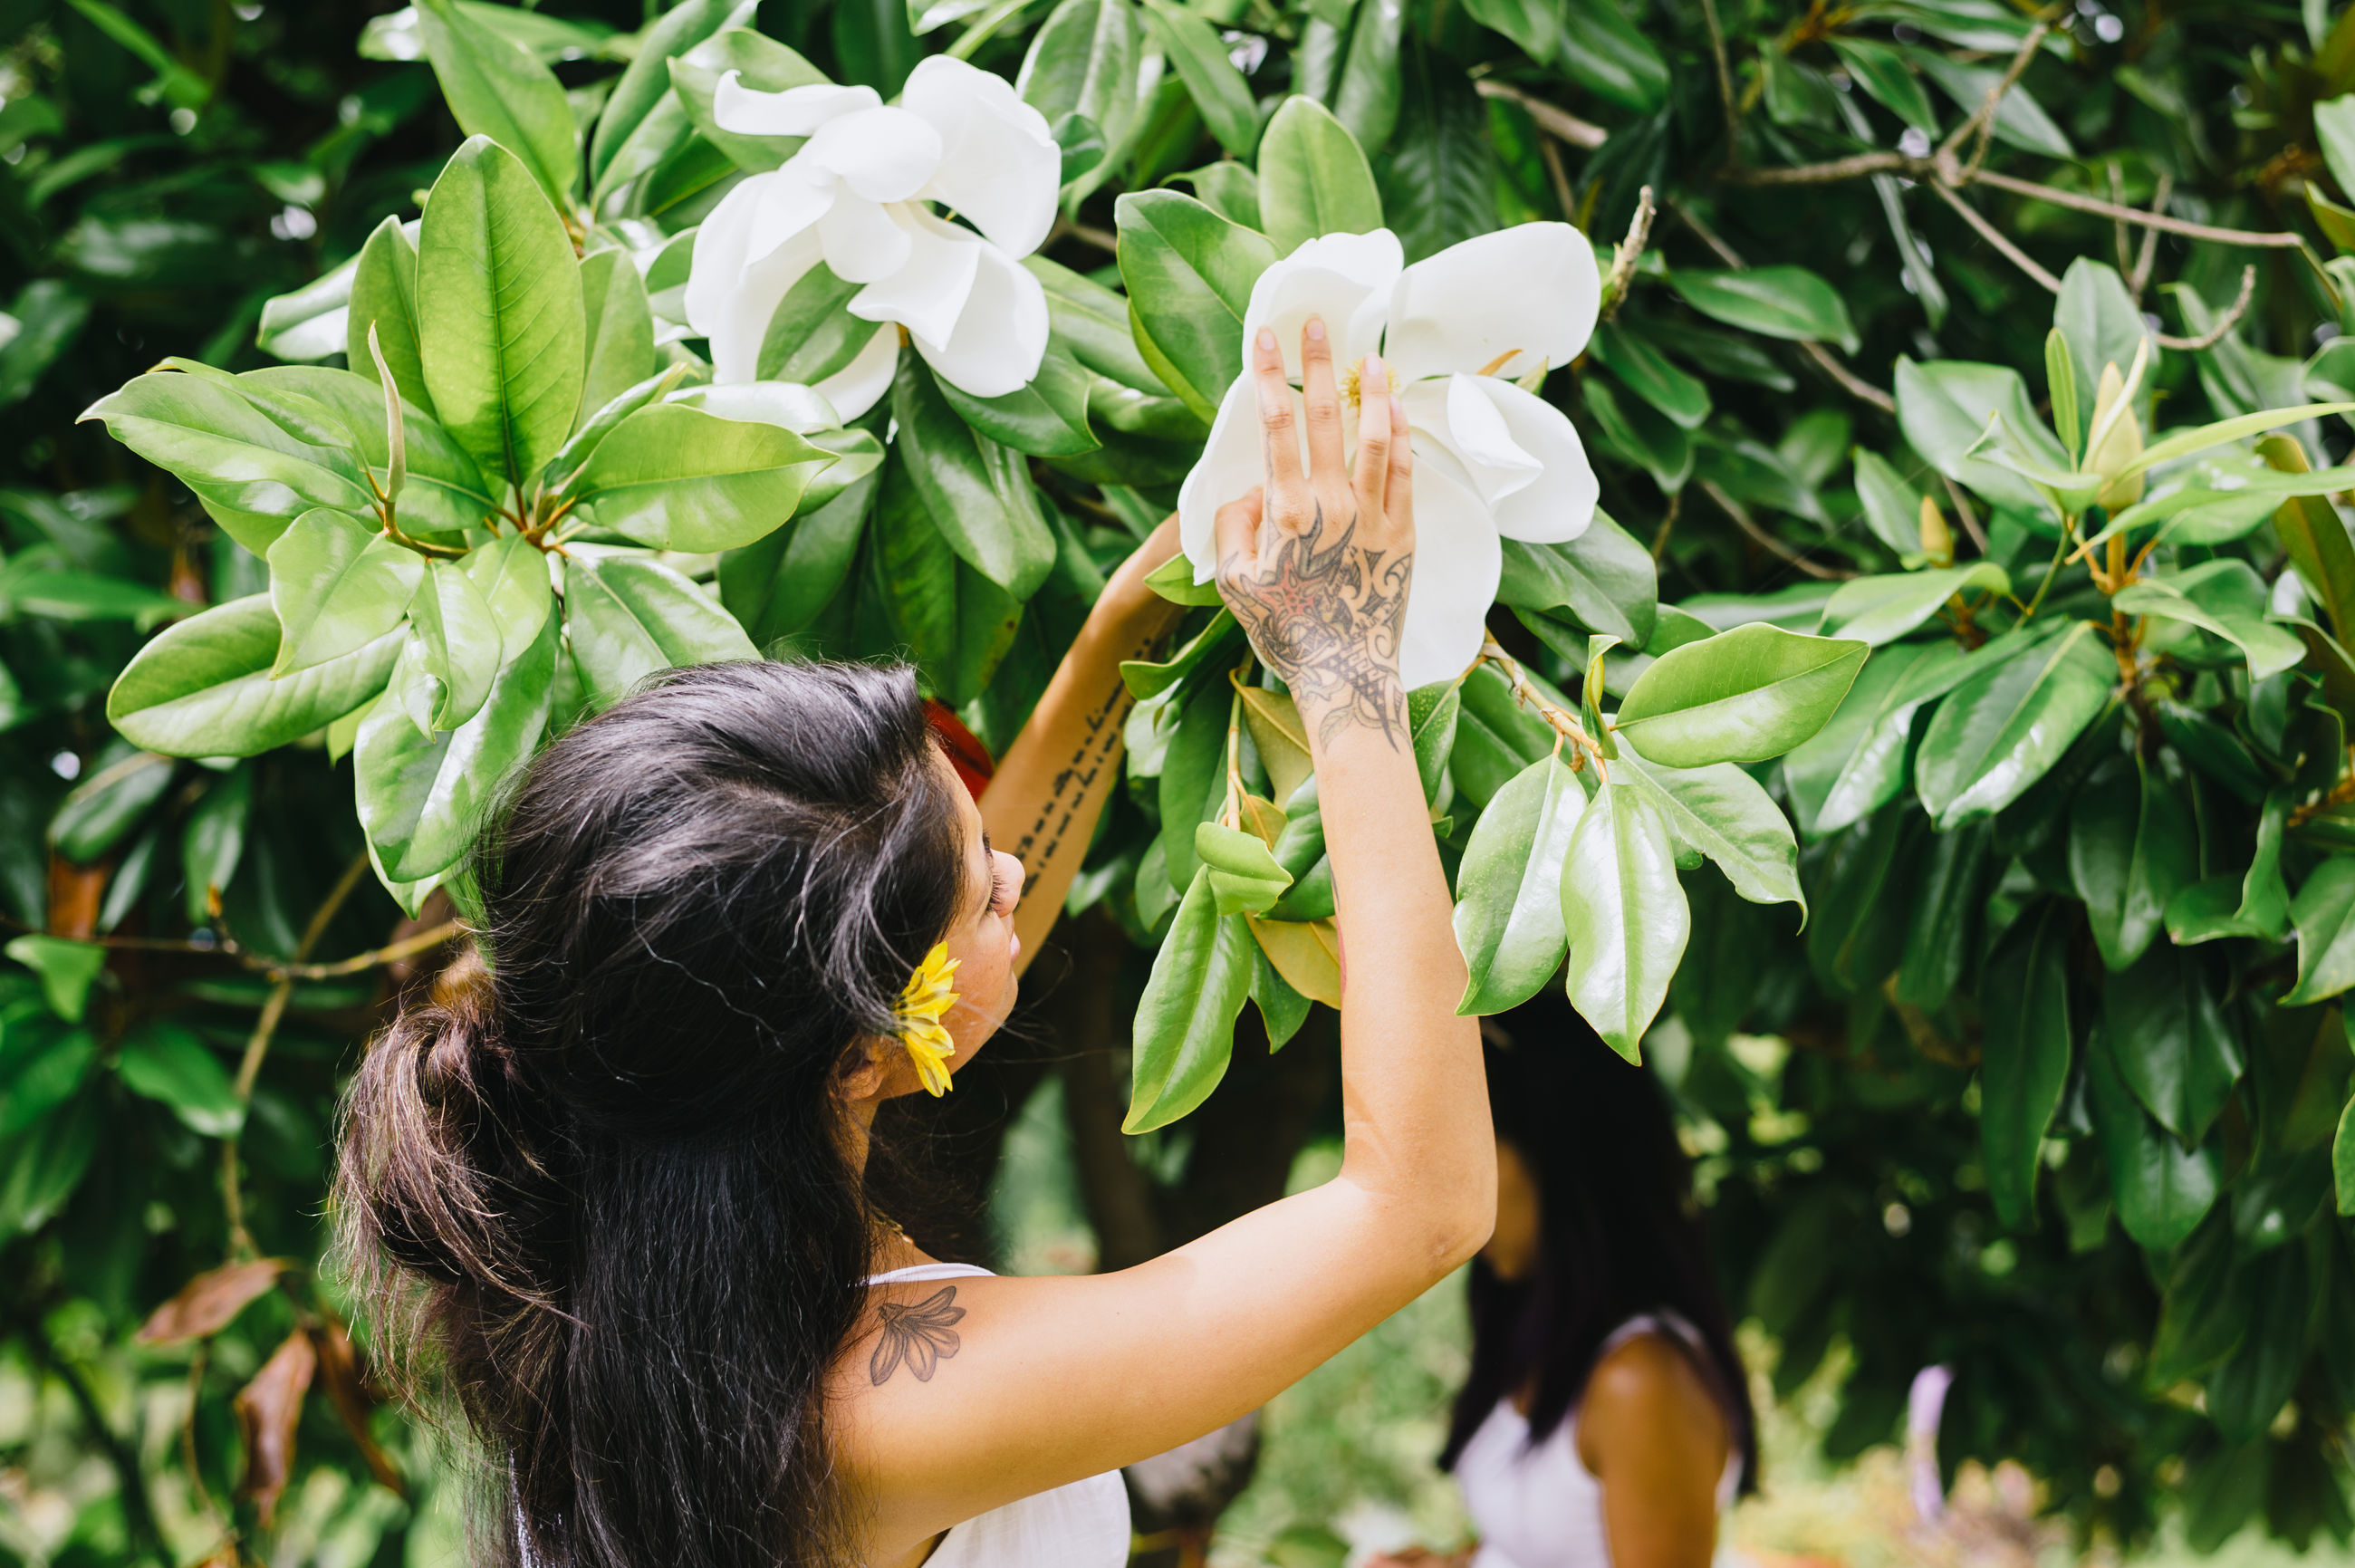 flower, real people, plant, nature, growth, one person, rear view, day, outdoors, leaf, fragility, beauty in nature, tree, childhood, women, lifestyles, branch, flower head, freshness, people